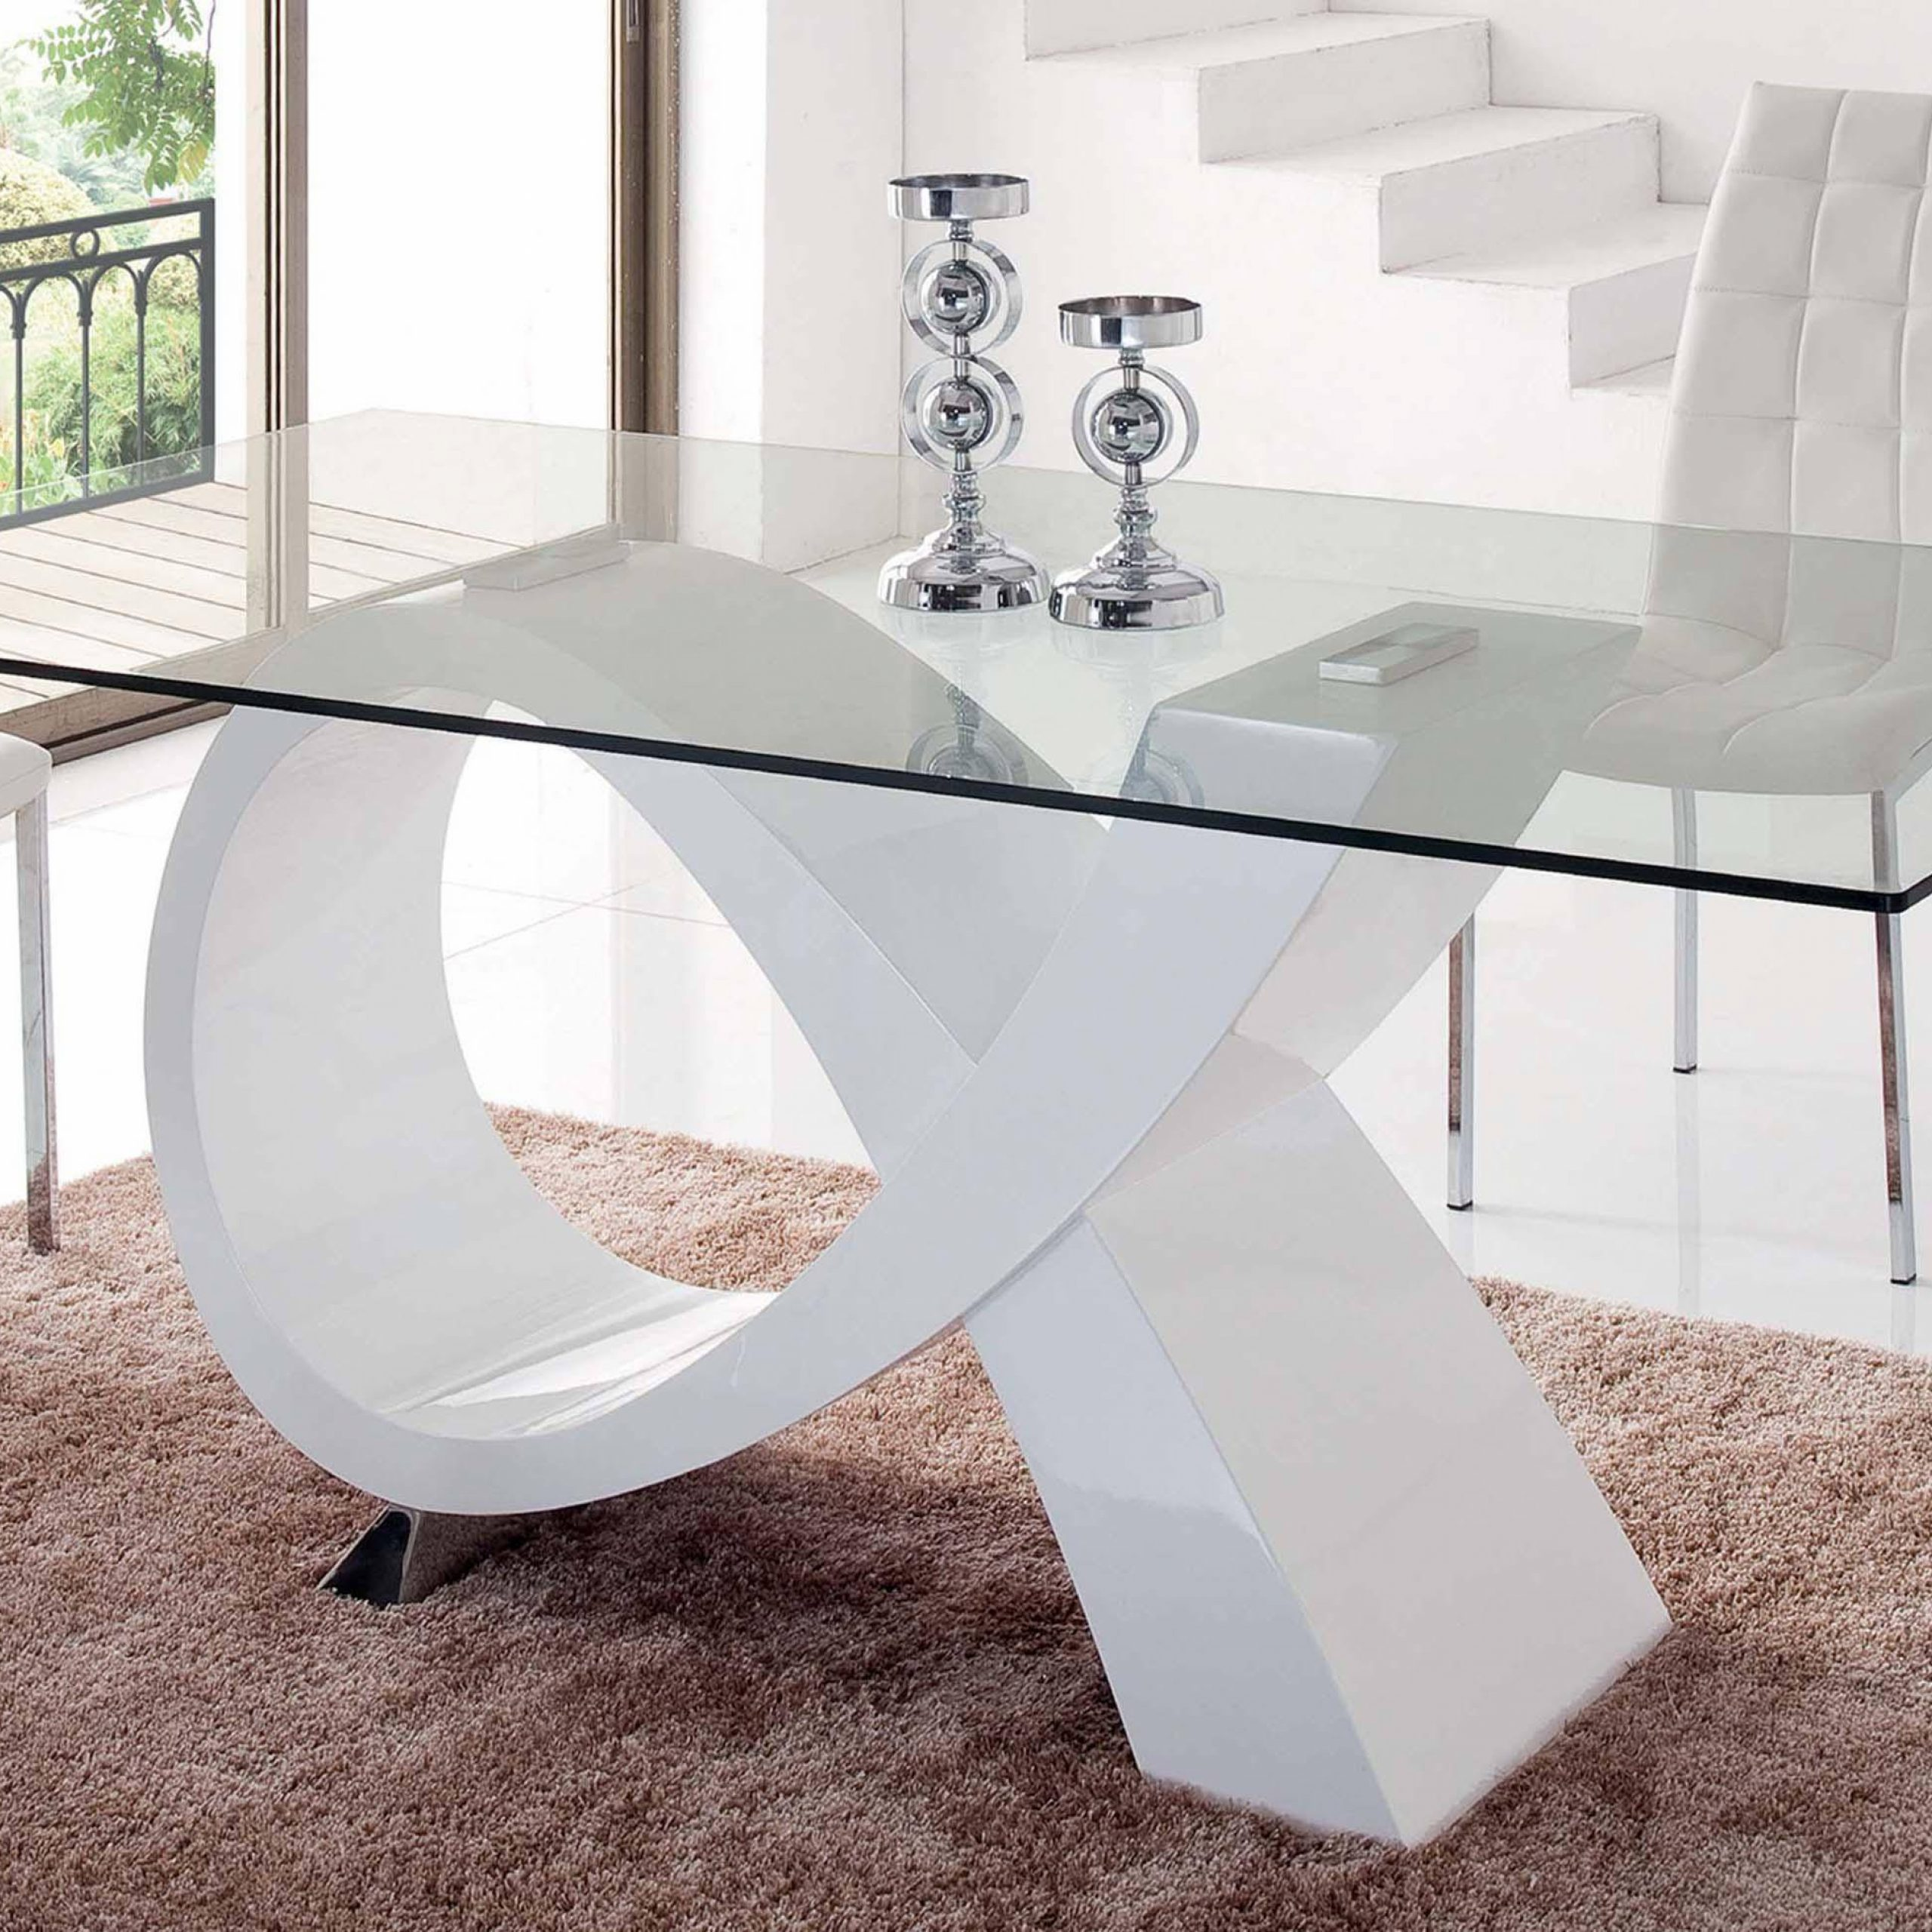 Newest Rectangular Glasstop Dining Tables with regard to Modern Rectangular Glass Top High Gloss Finish White Dining